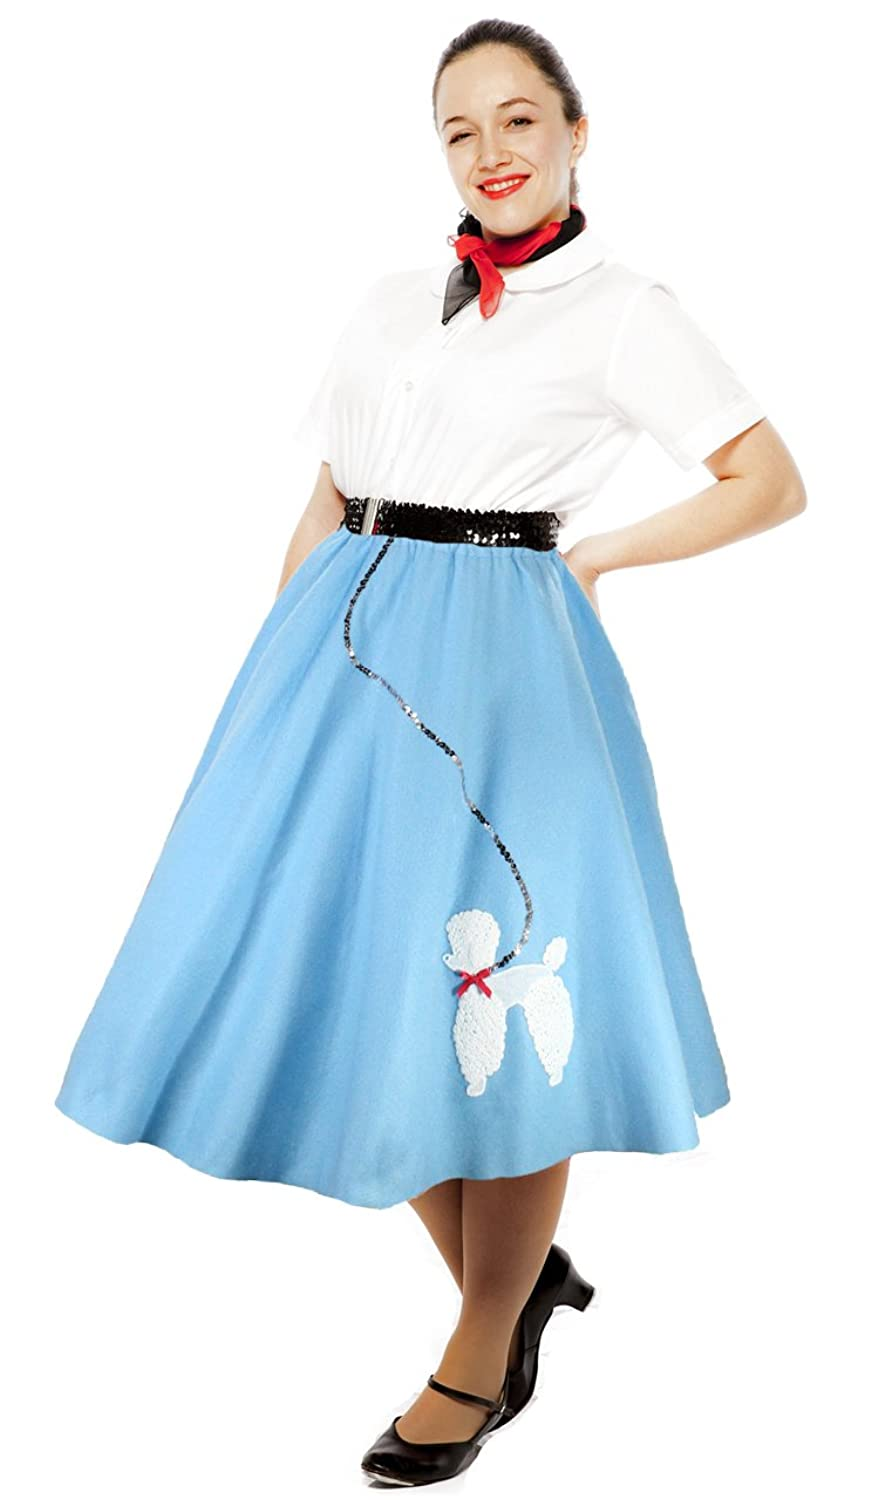 1950s Costumes- Poodle Skirts, Grease, Monroe, Pin Up, I Love Lucy 50s Felt Poodle Skirt in Retro Colors - size Adult Medium / Large by Hey Viv ! $34.50 AT vintagedancer.com